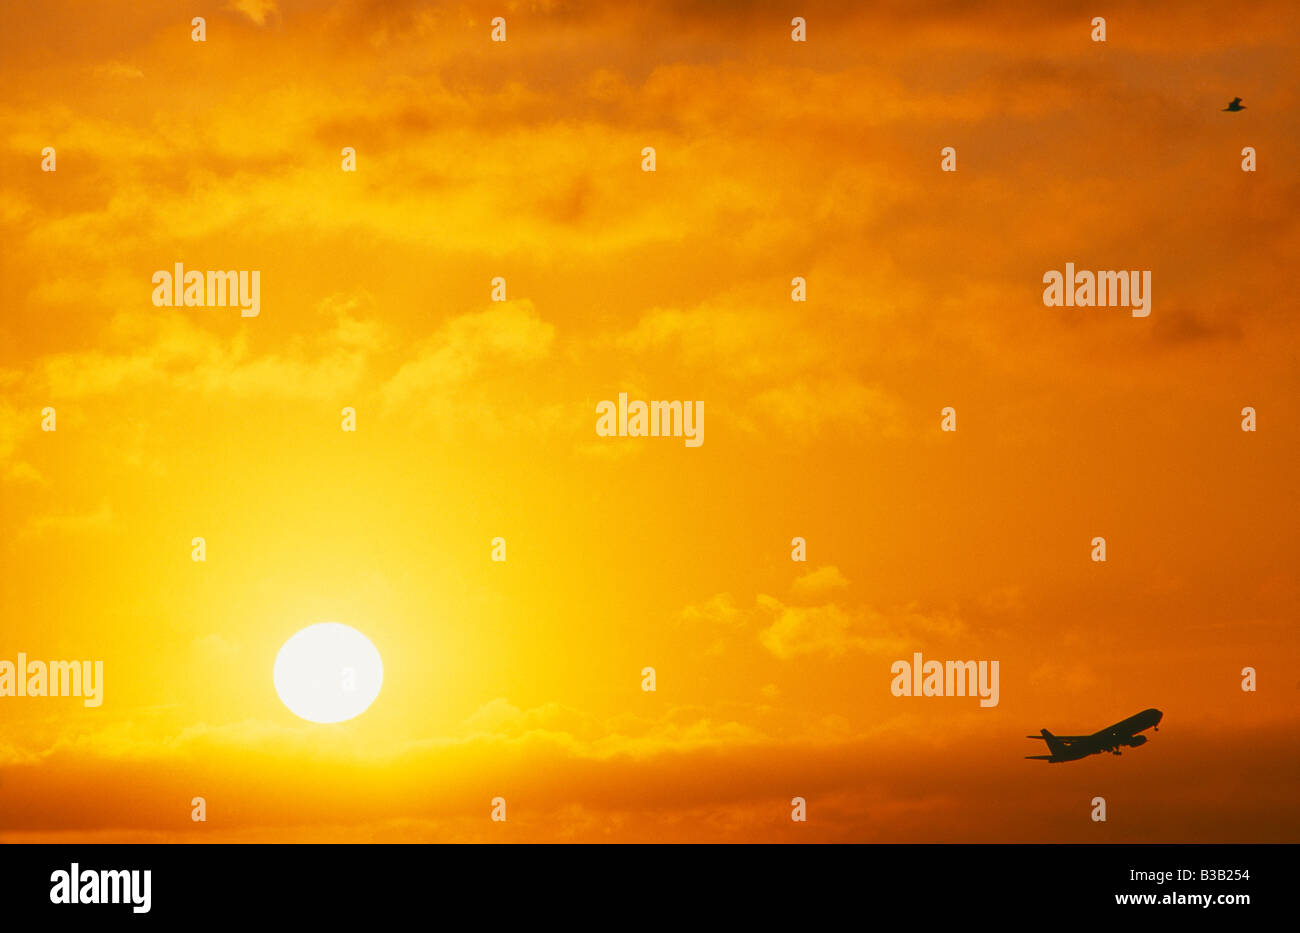 an aircraft taking off in front of the sunrise with a bird mirroring the plane, Heathrow, London, UK Stock Photo